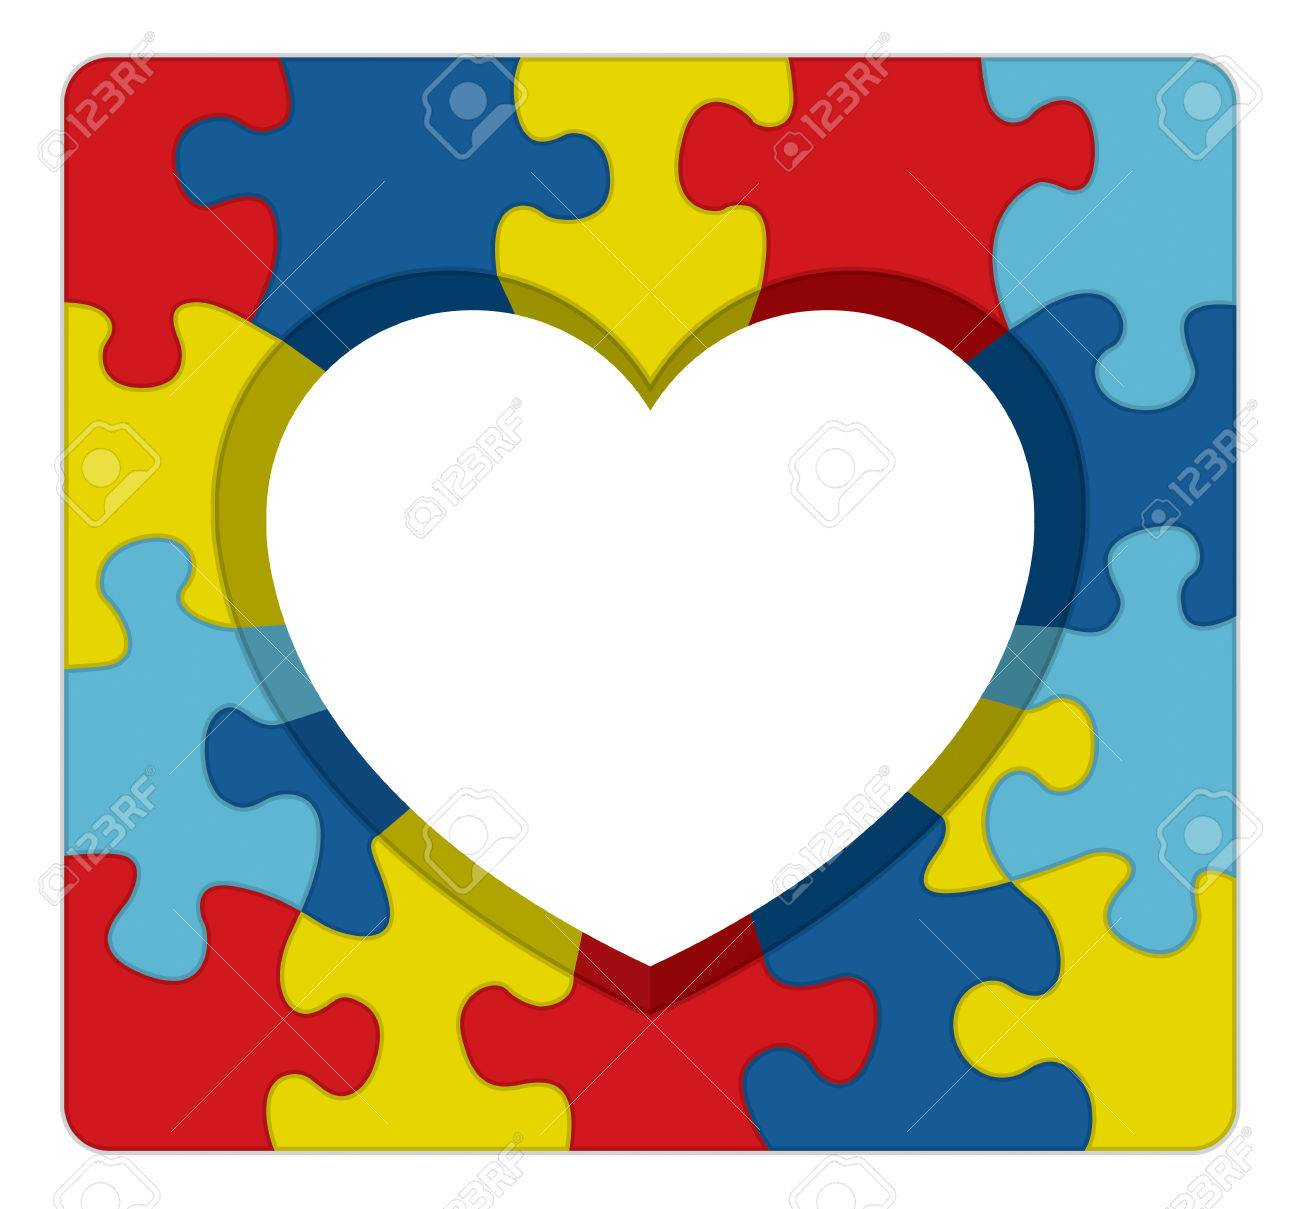 A Symbolic Puzzle Heart Illustration For Autism Awareness Vector